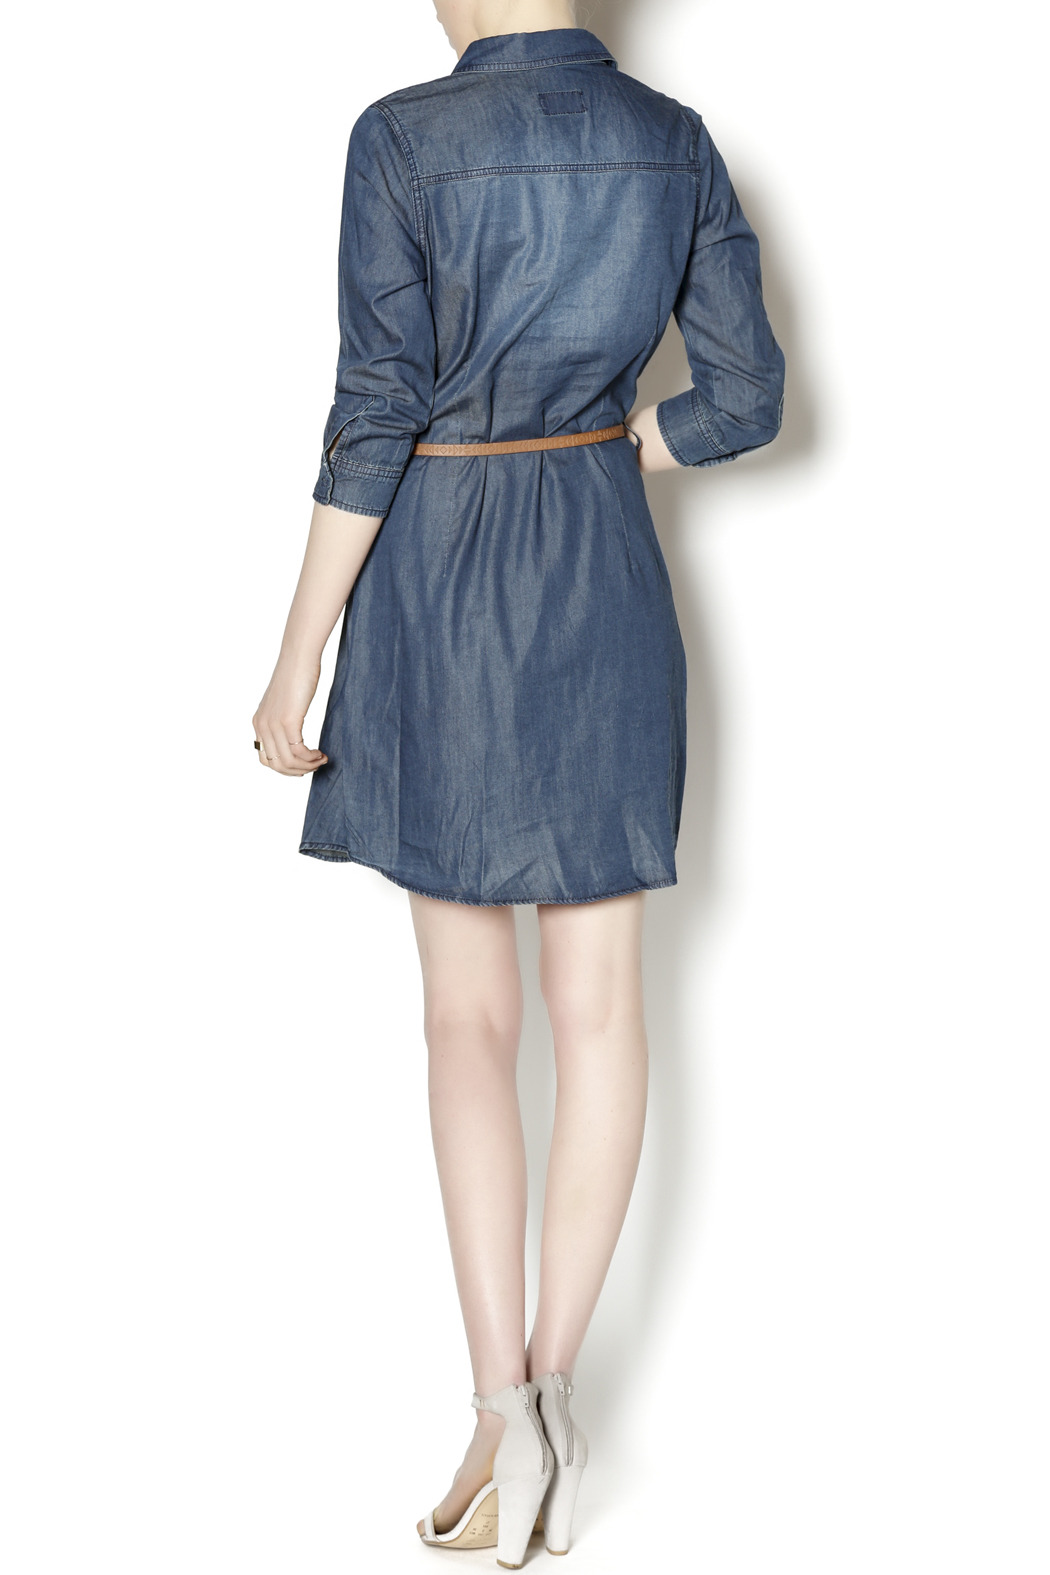 ci sono belted denim dress from tennessee by the owl cove